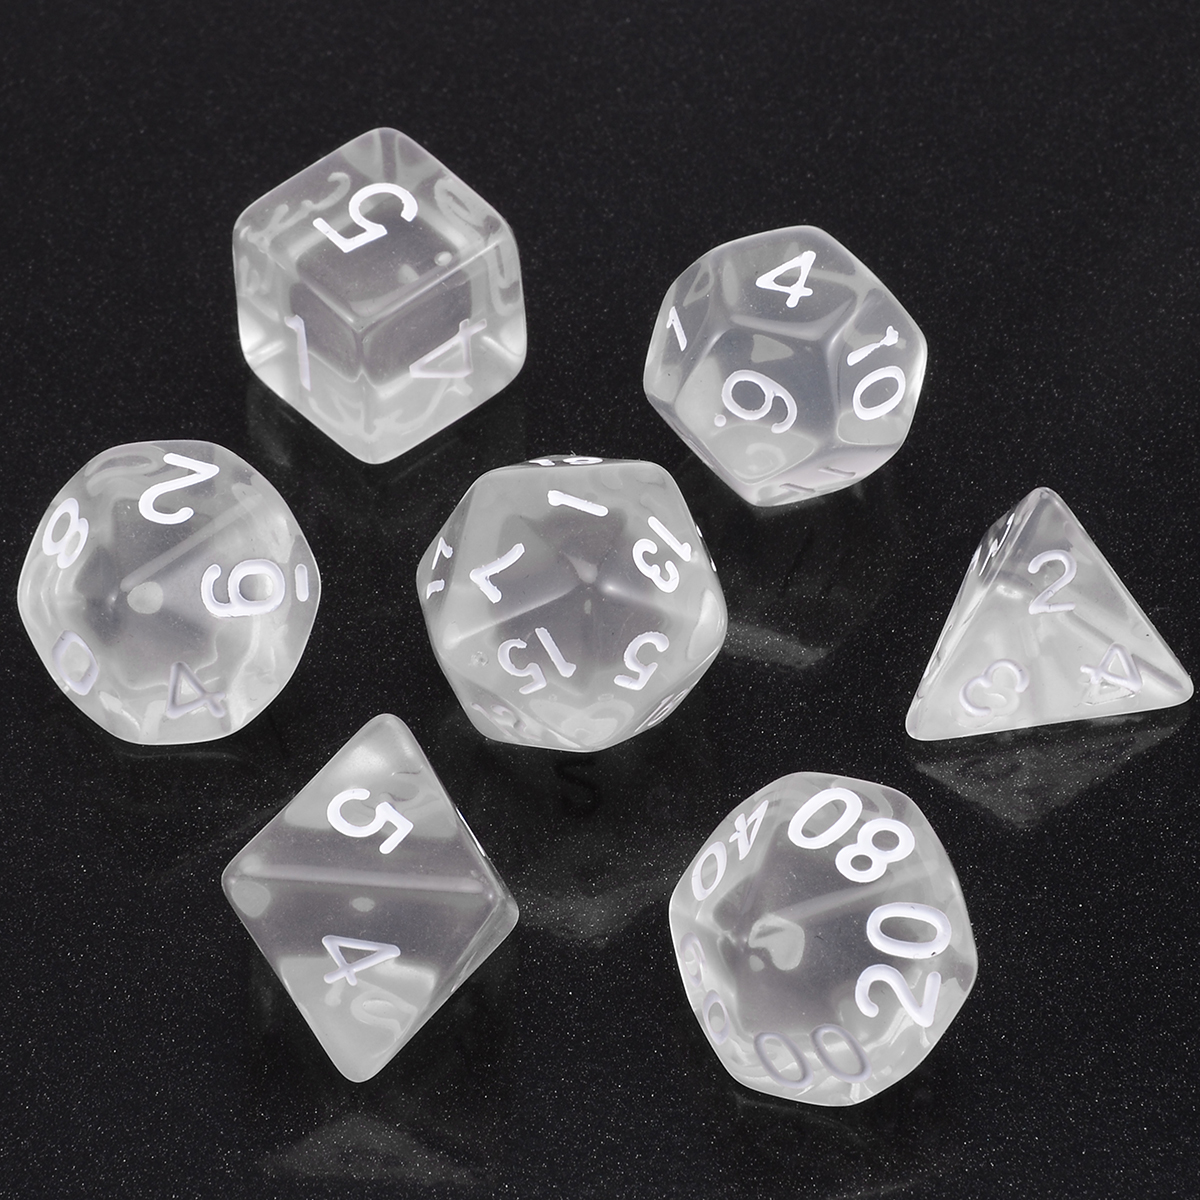 7pcs/lot White Polyhedral Transparent Dices Multi-side  With Cloth Bag For Gaming  Dungeons And Dragons RPG Game